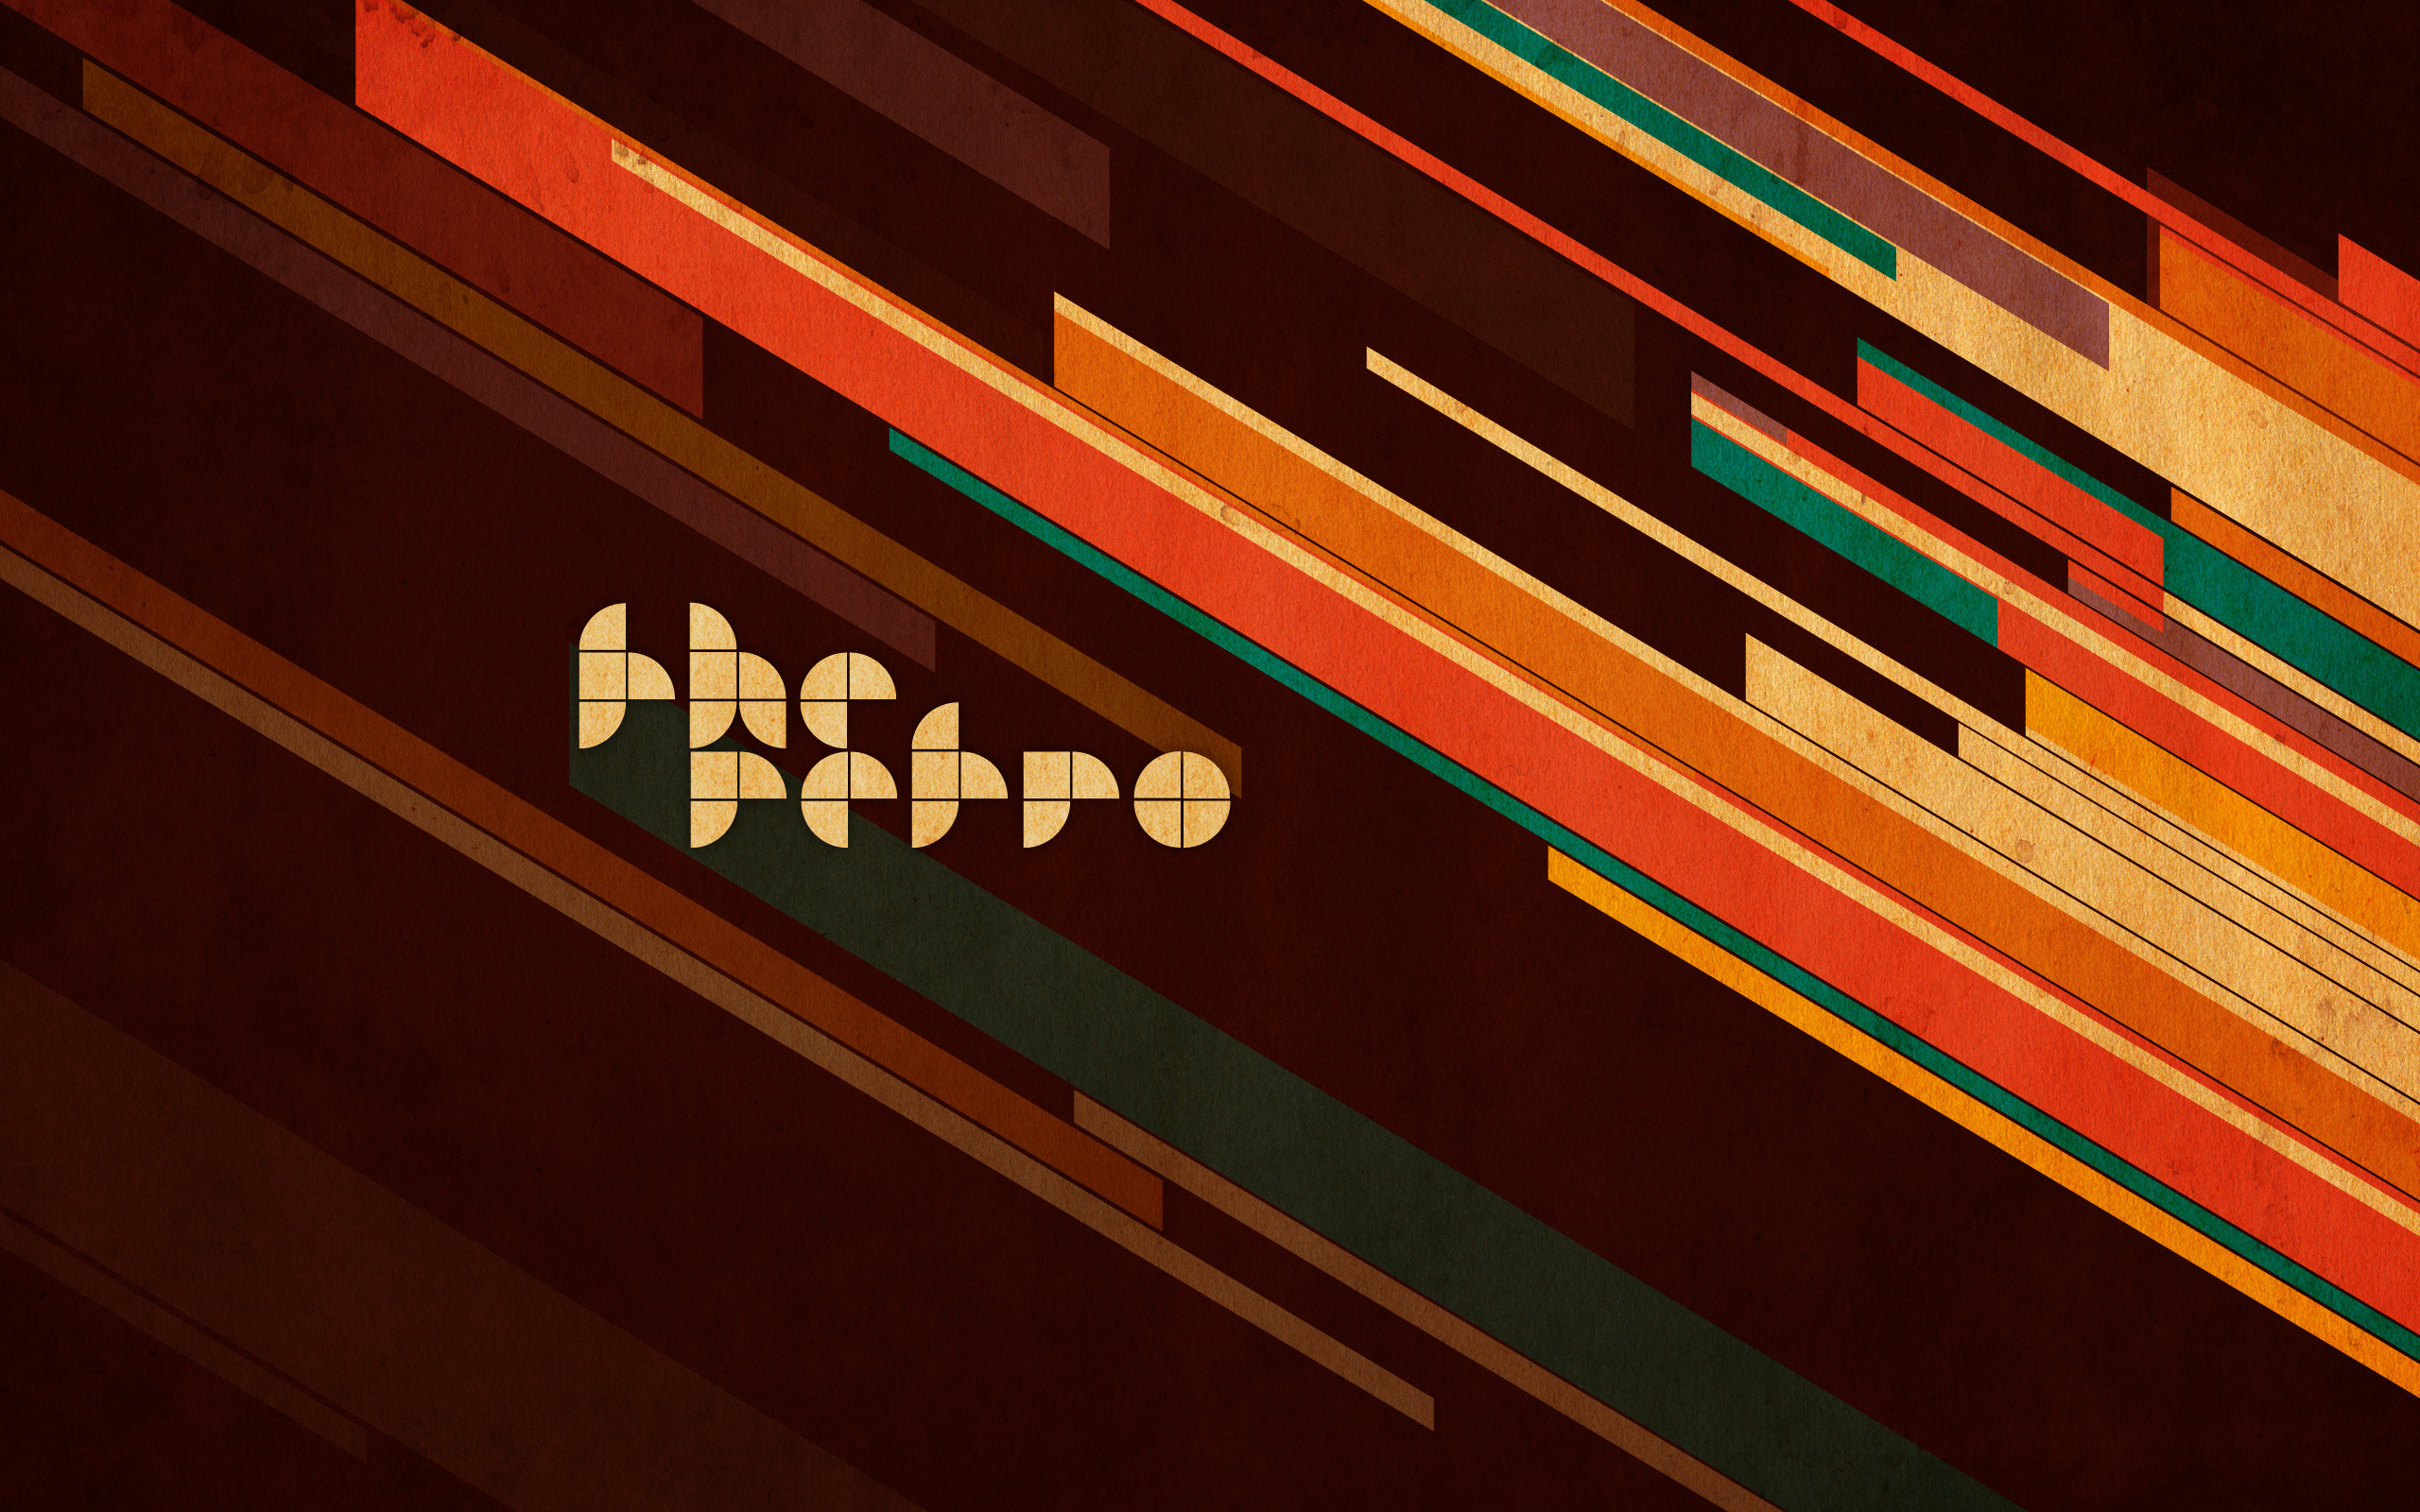 Retro Music Wallpaper 69 Images